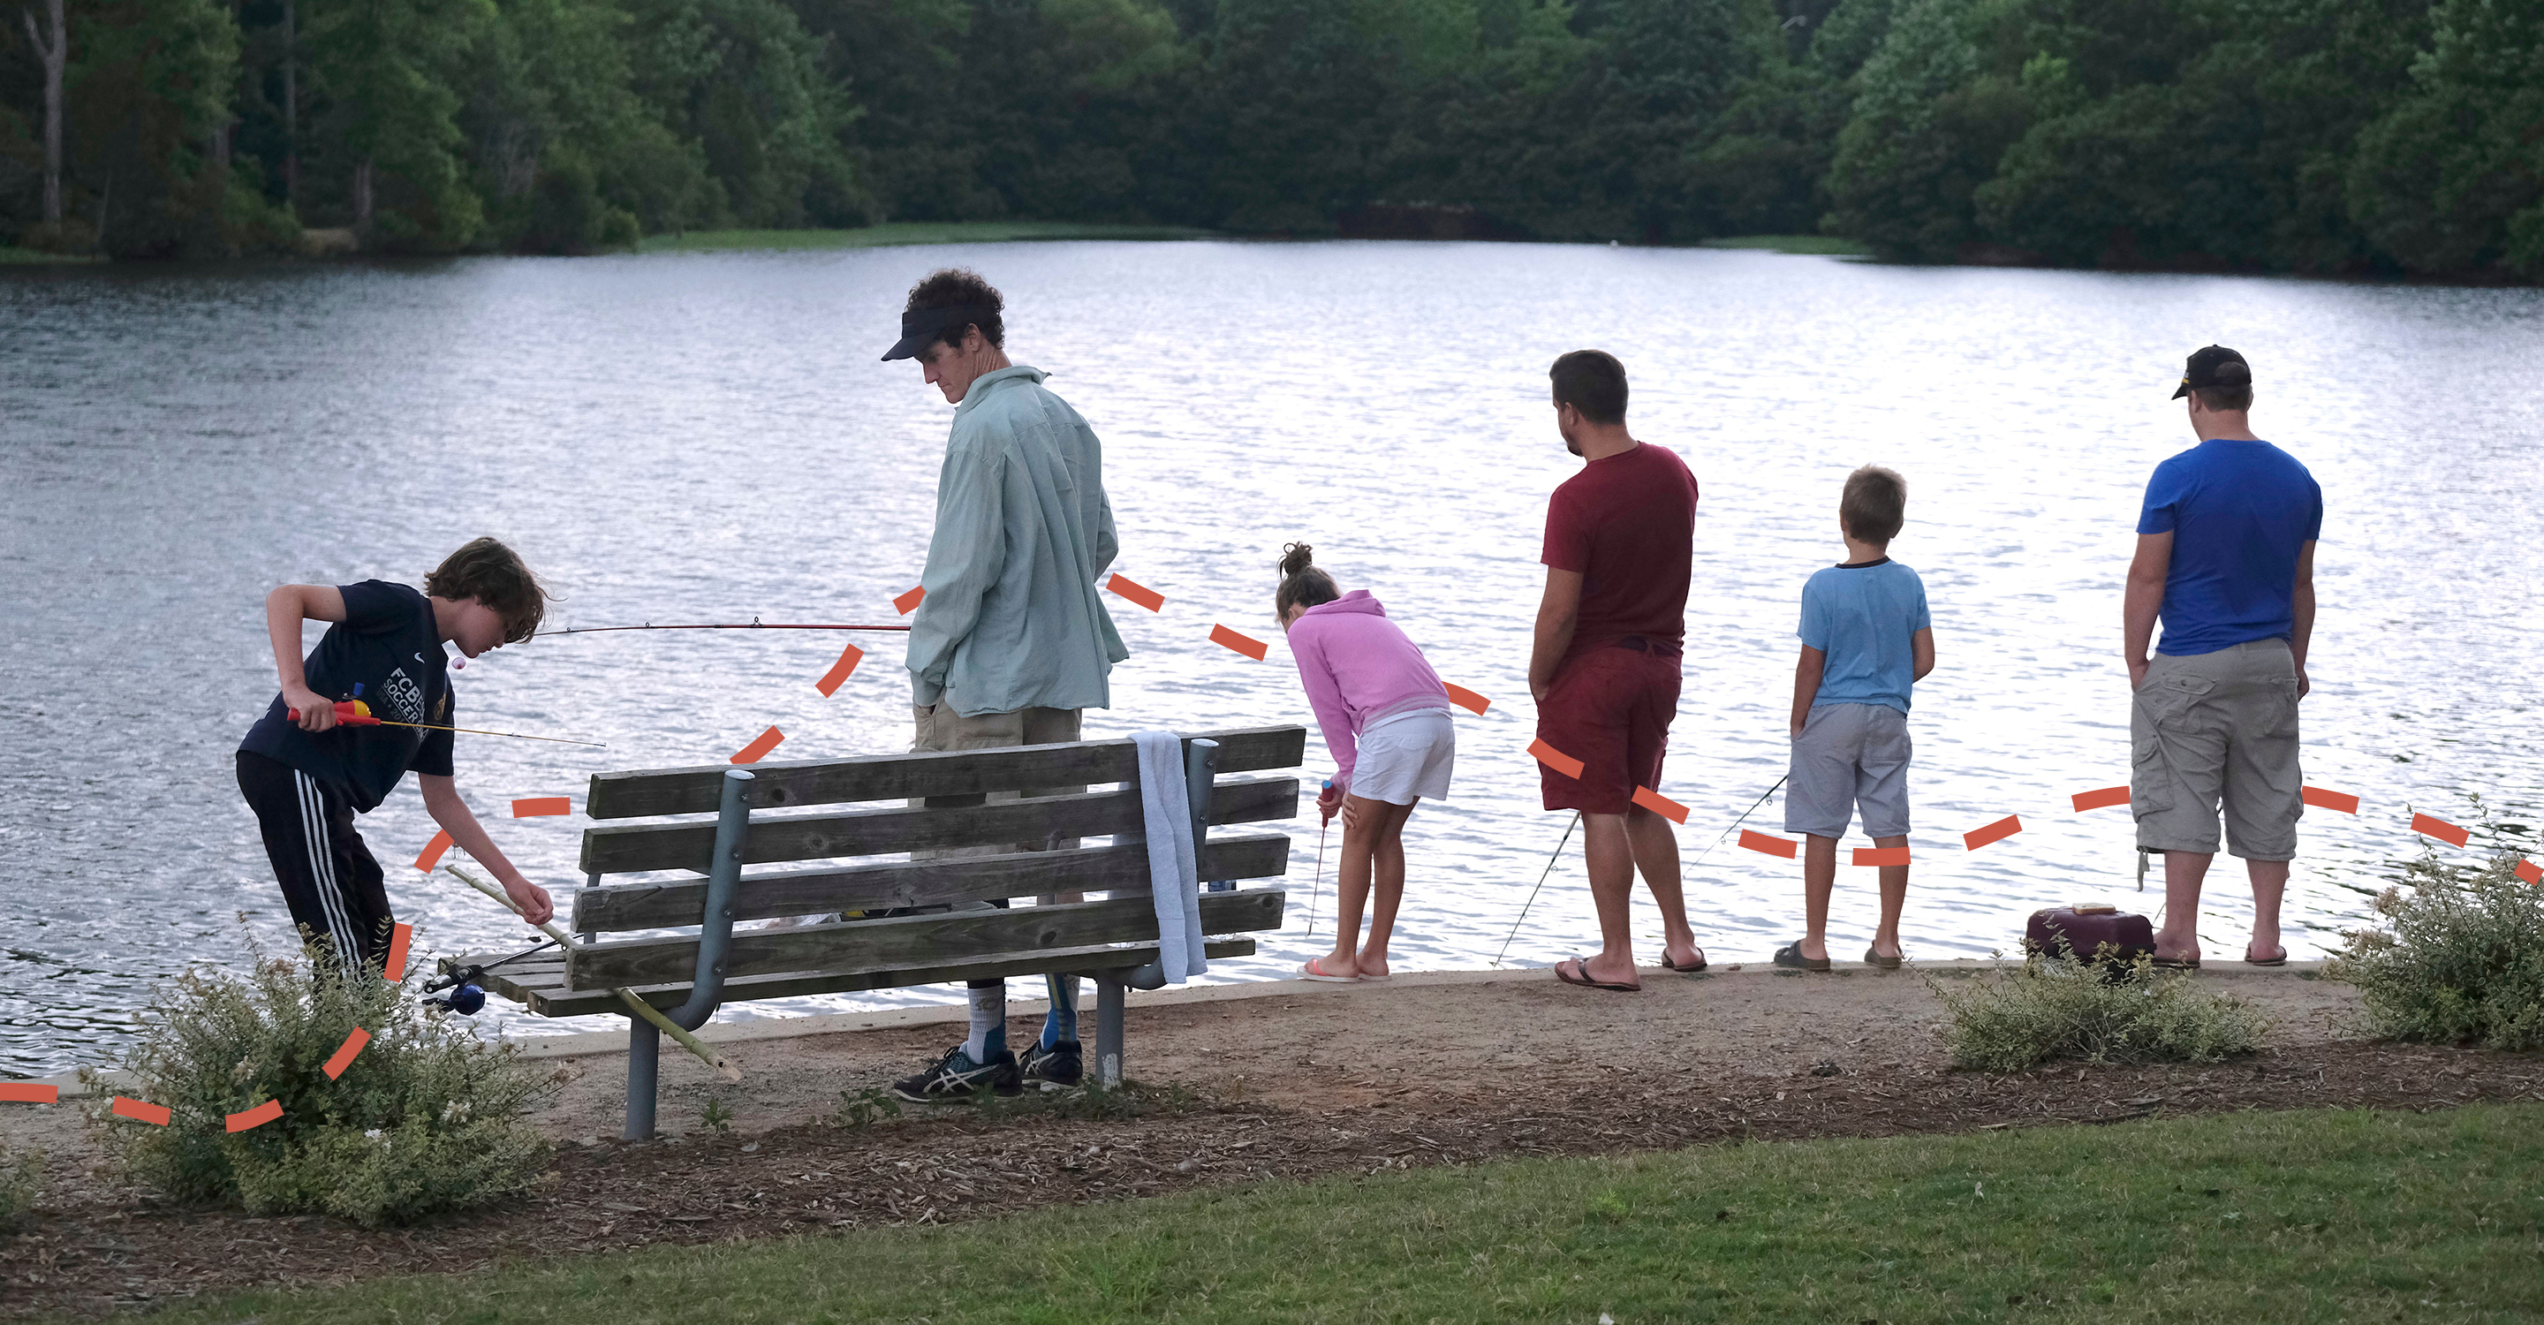 A group of six people fishing at the edge of a small lake.